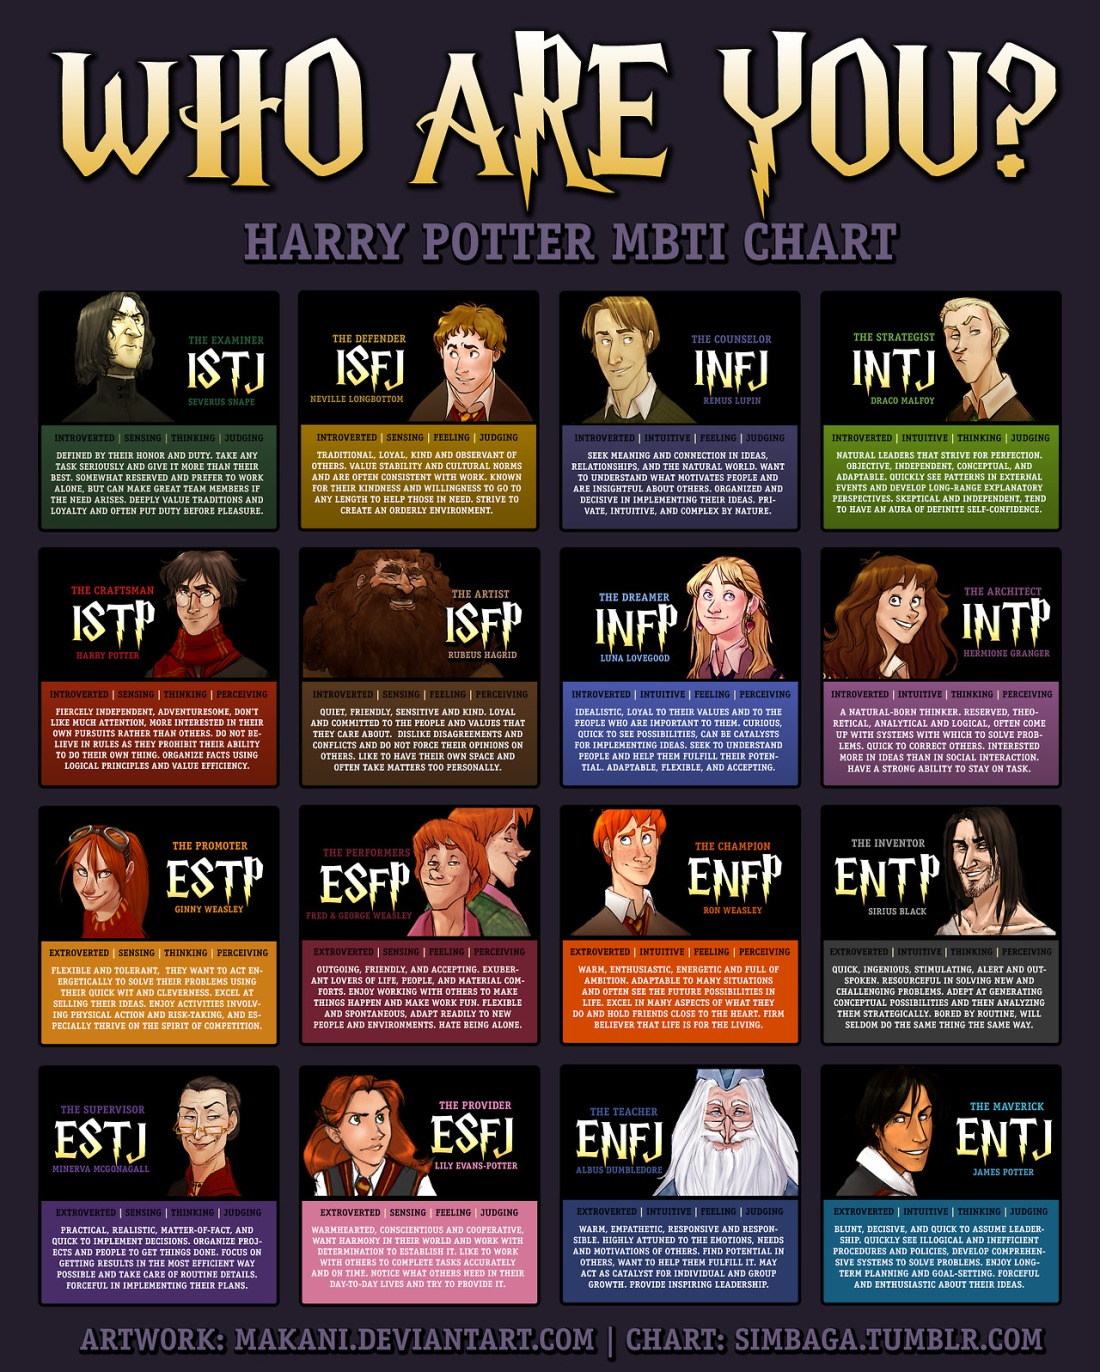 Harry Potter Myers-Briggs Chart